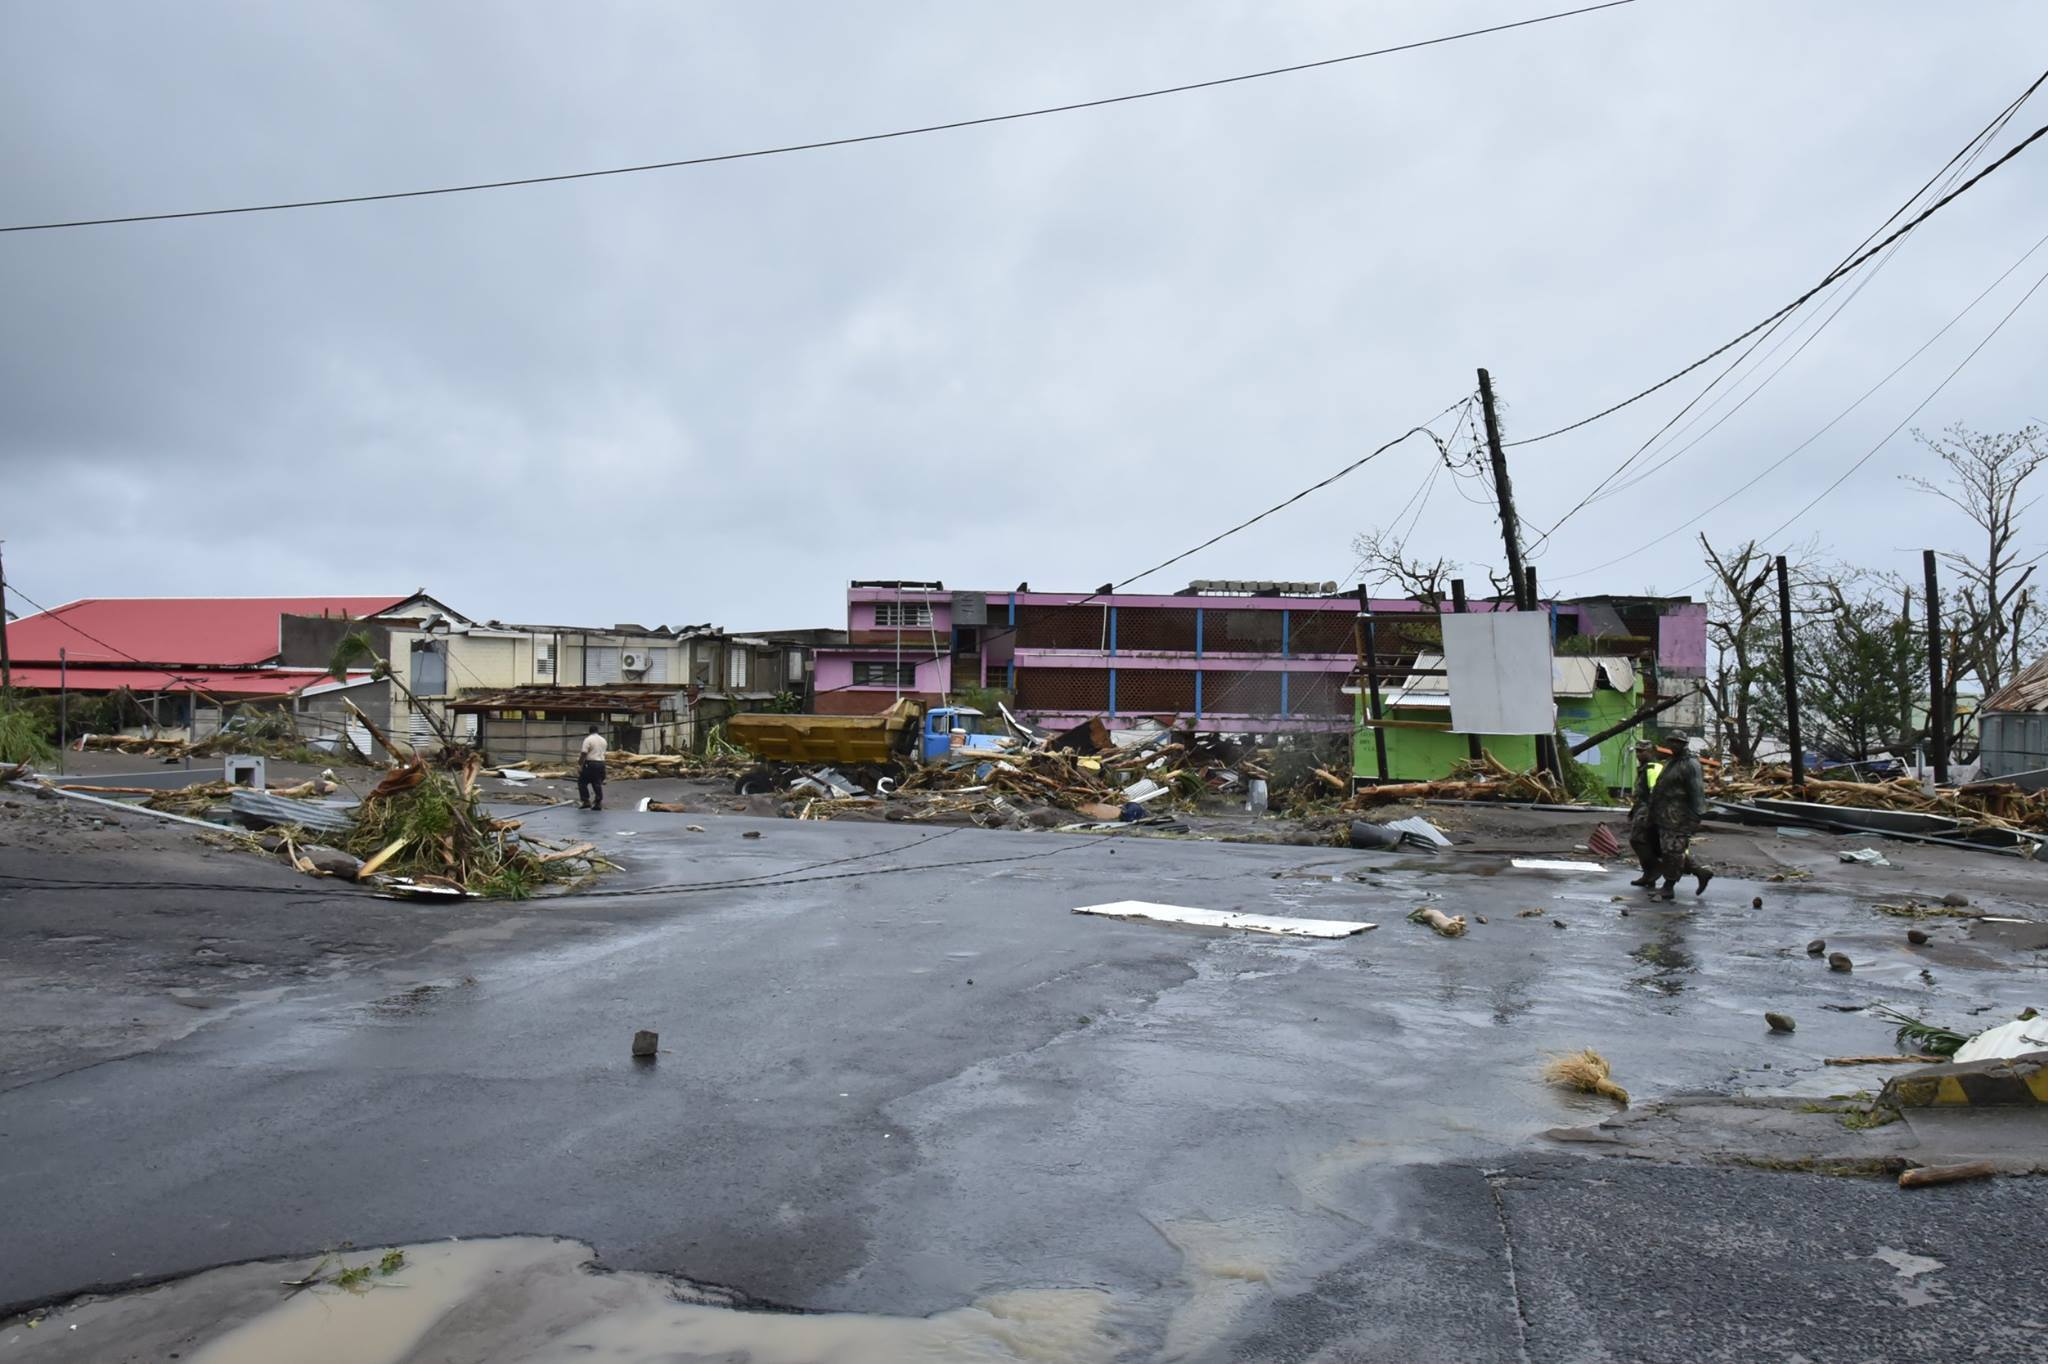 Devastation in Dominica